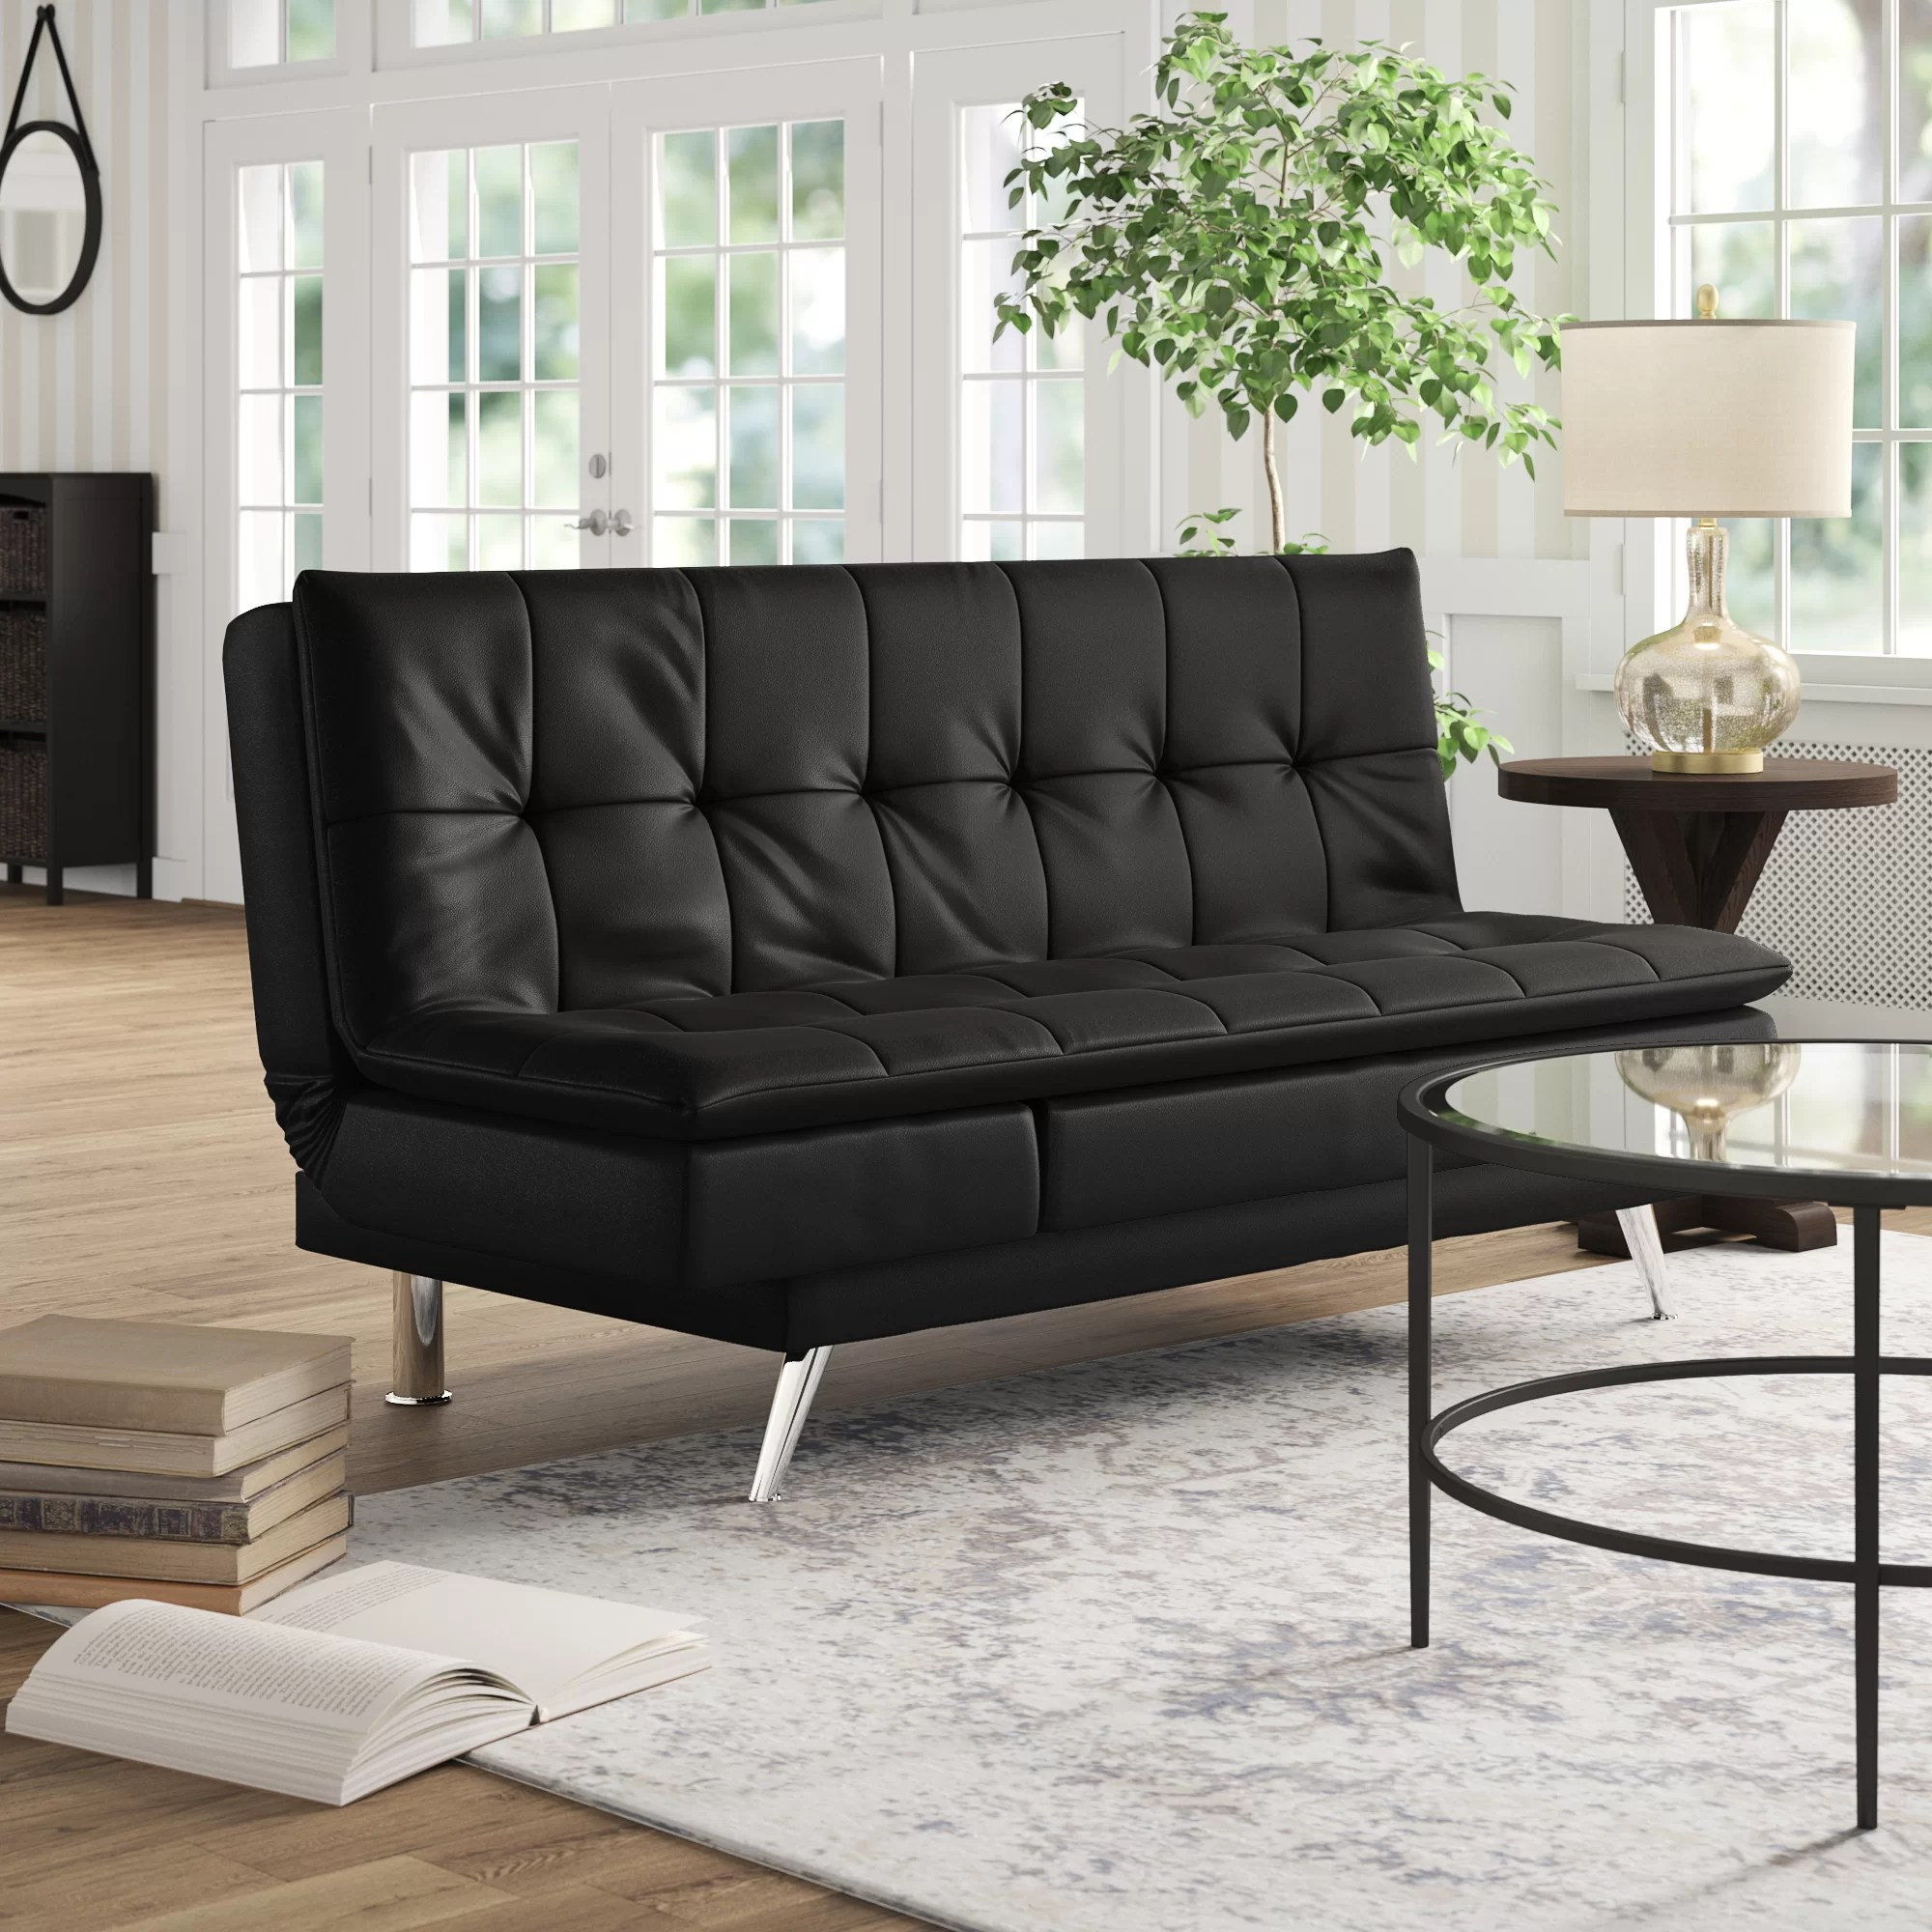 Cheap Black Leather Sofas | Bronx Black Leather Sofa Bed By Empire ...